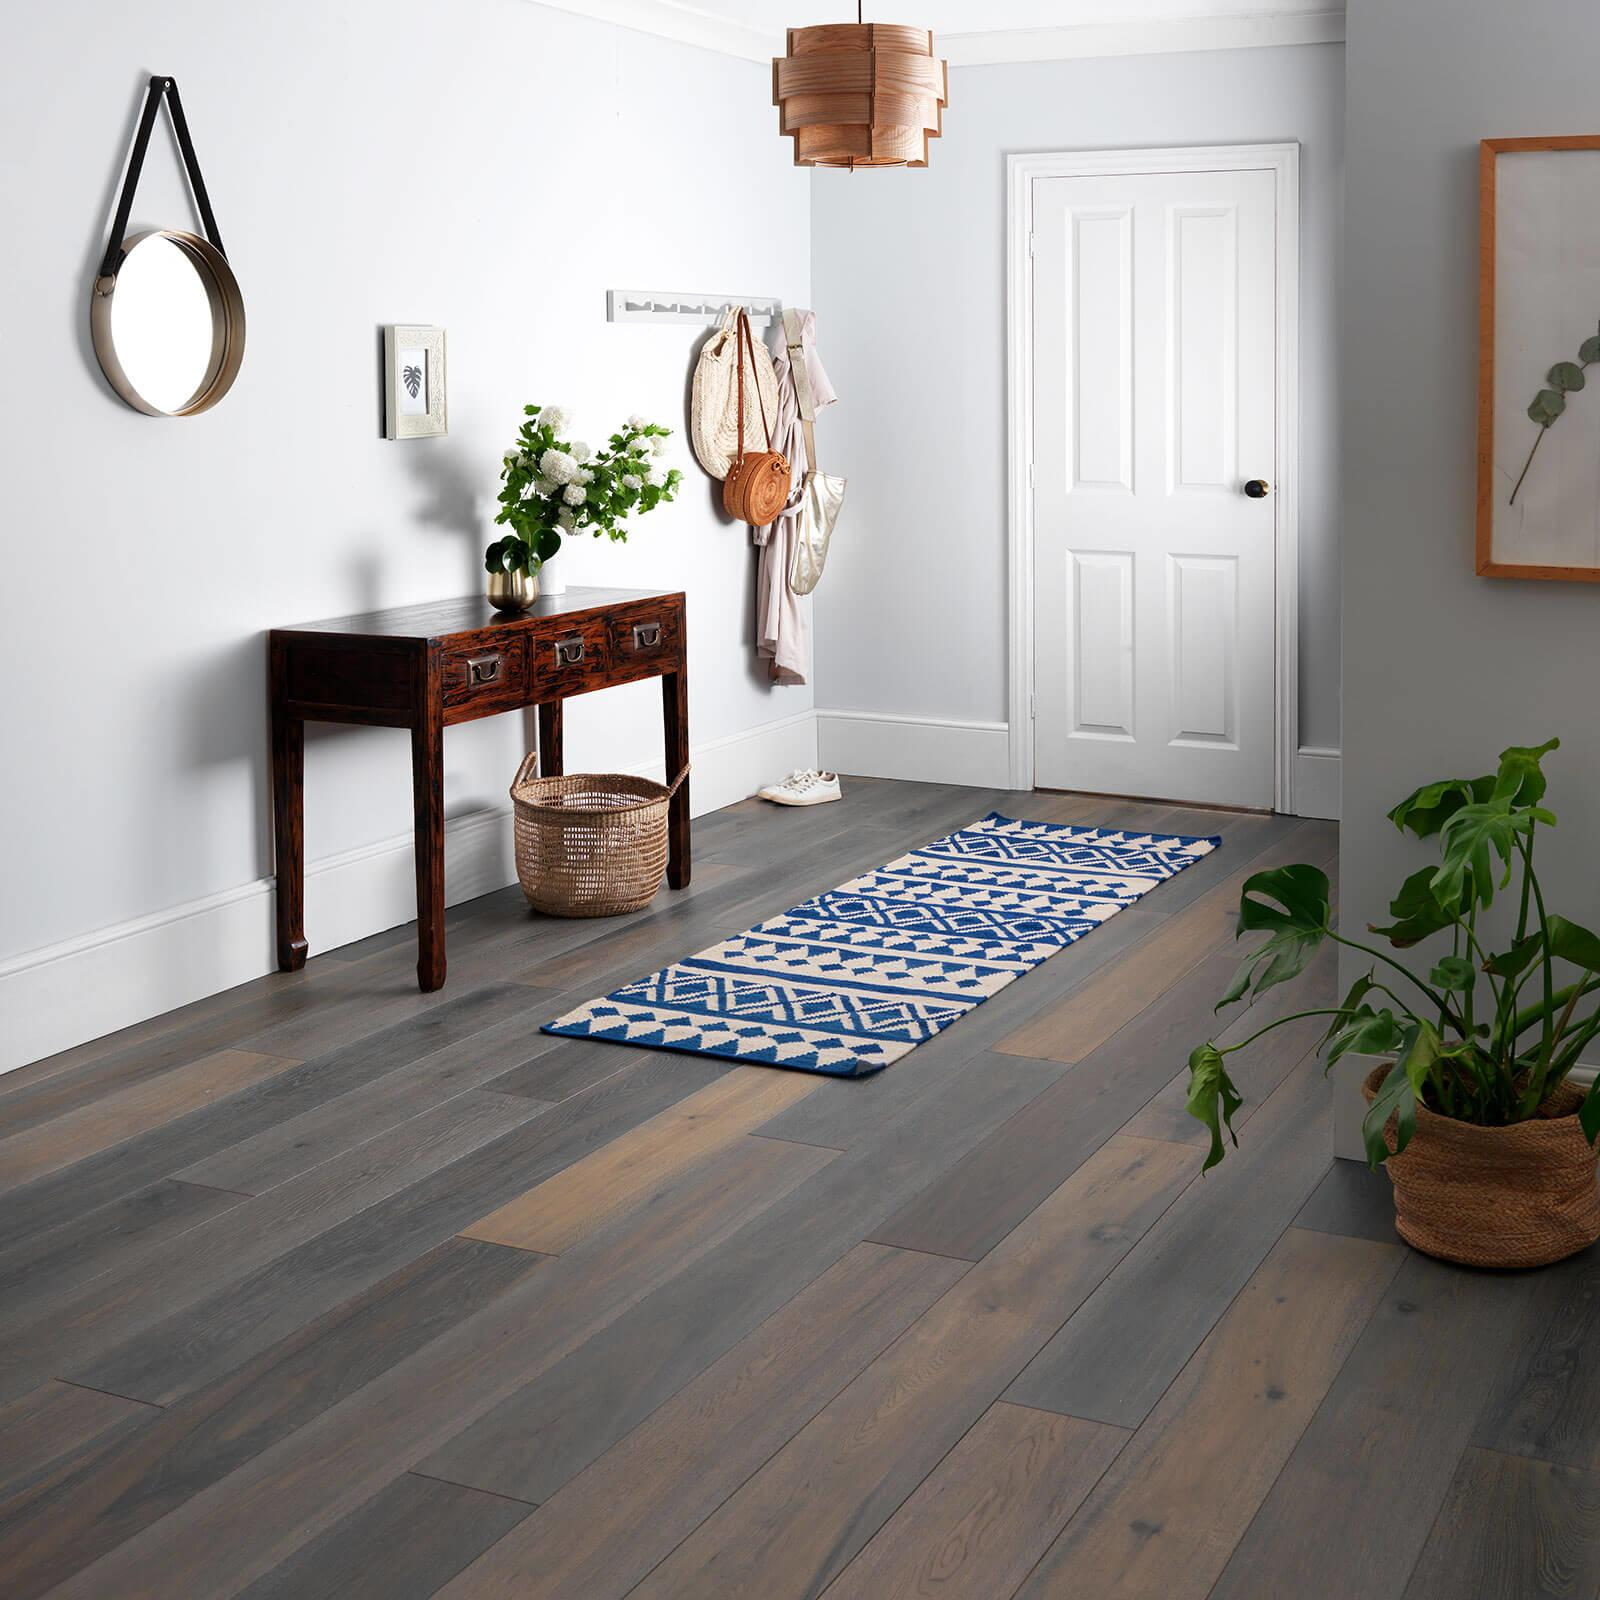 Woodpecker Harlech Stormy Oak Brushed & Matt Lacquered Engineered Wood Flooring 190mm 35-HWG-001